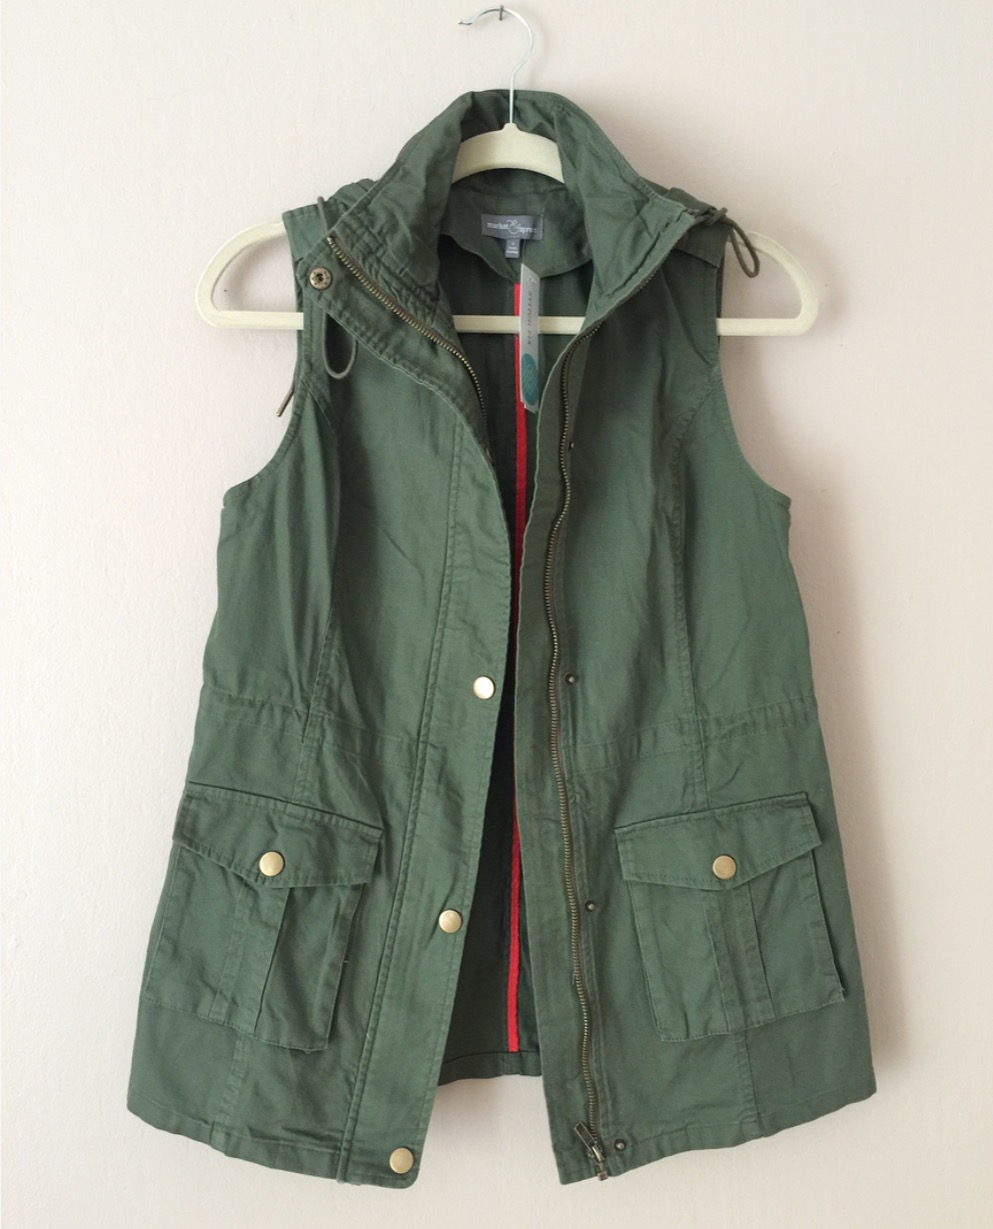 Market & Spruce - Jahana Cargo Vest from Stitch Fix - $68